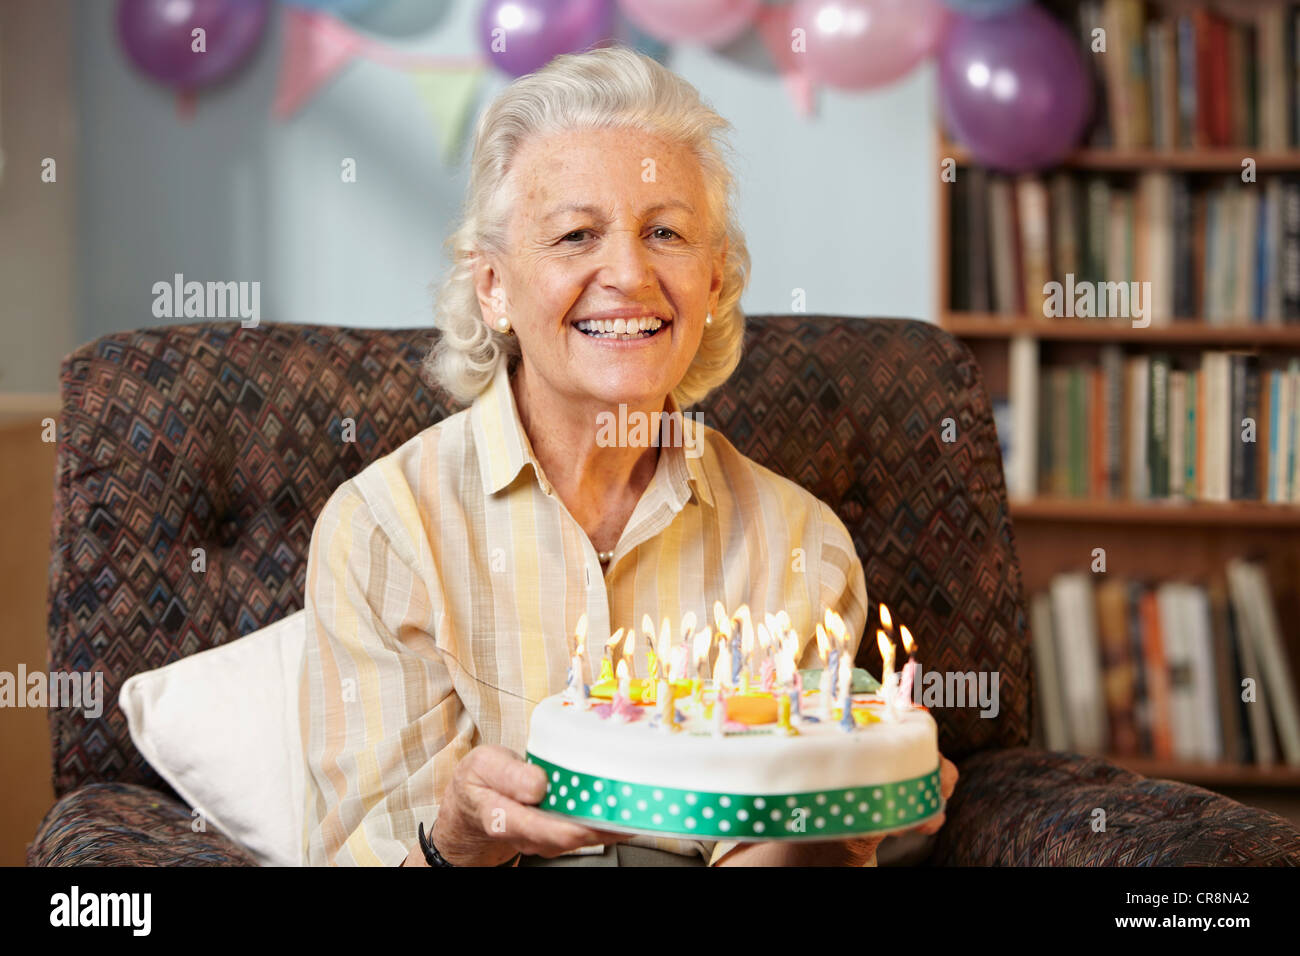 Senior Woman Holding Birthday Cake Portrait